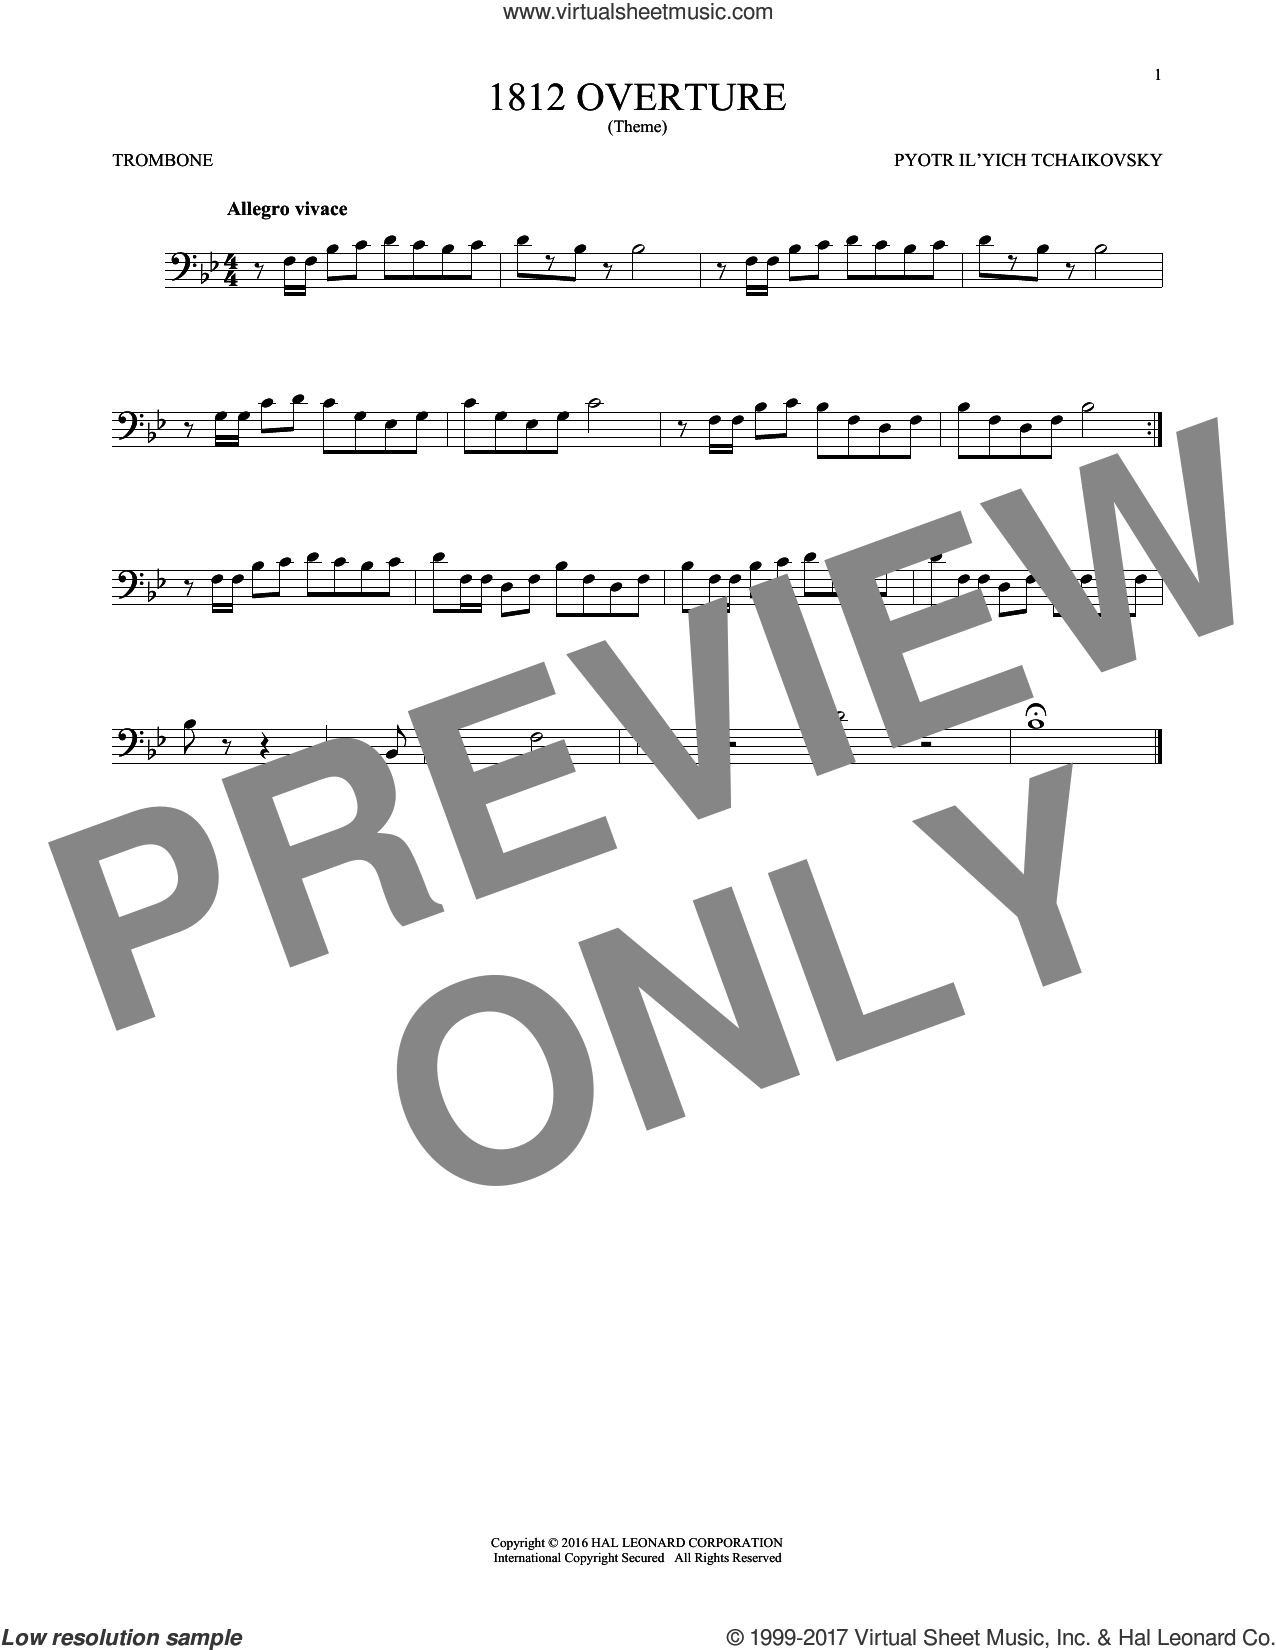 1812 Overture sheet music for trombone solo by Pyotr Ilyich Tchaikovsky, classical score, intermediate skill level